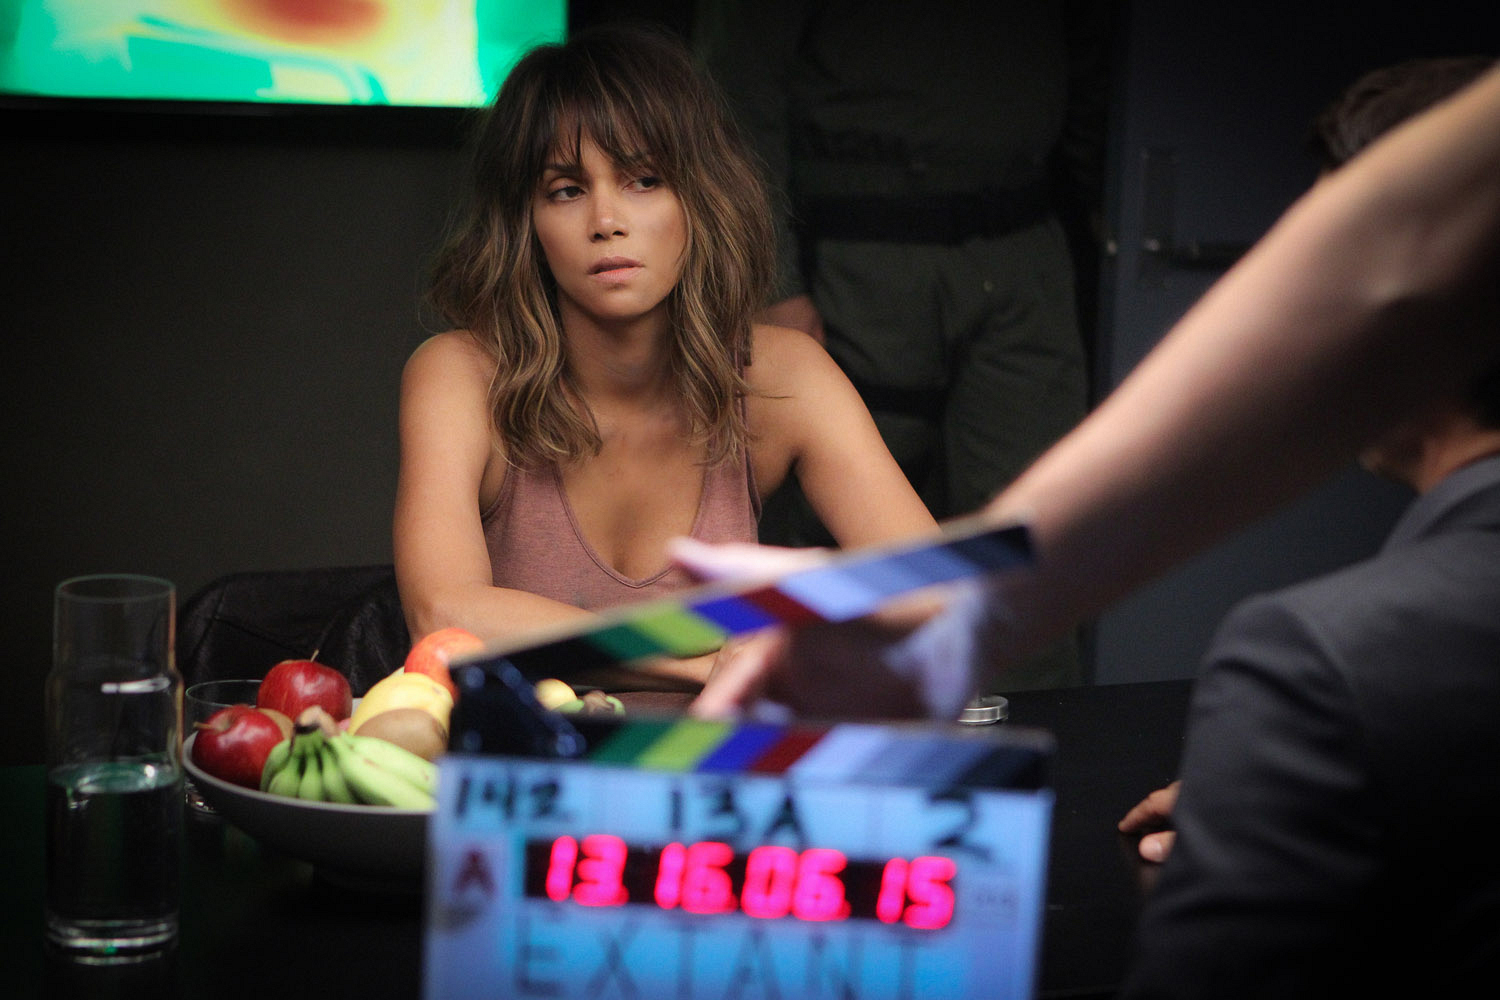 Halle Berry in an intense scene.